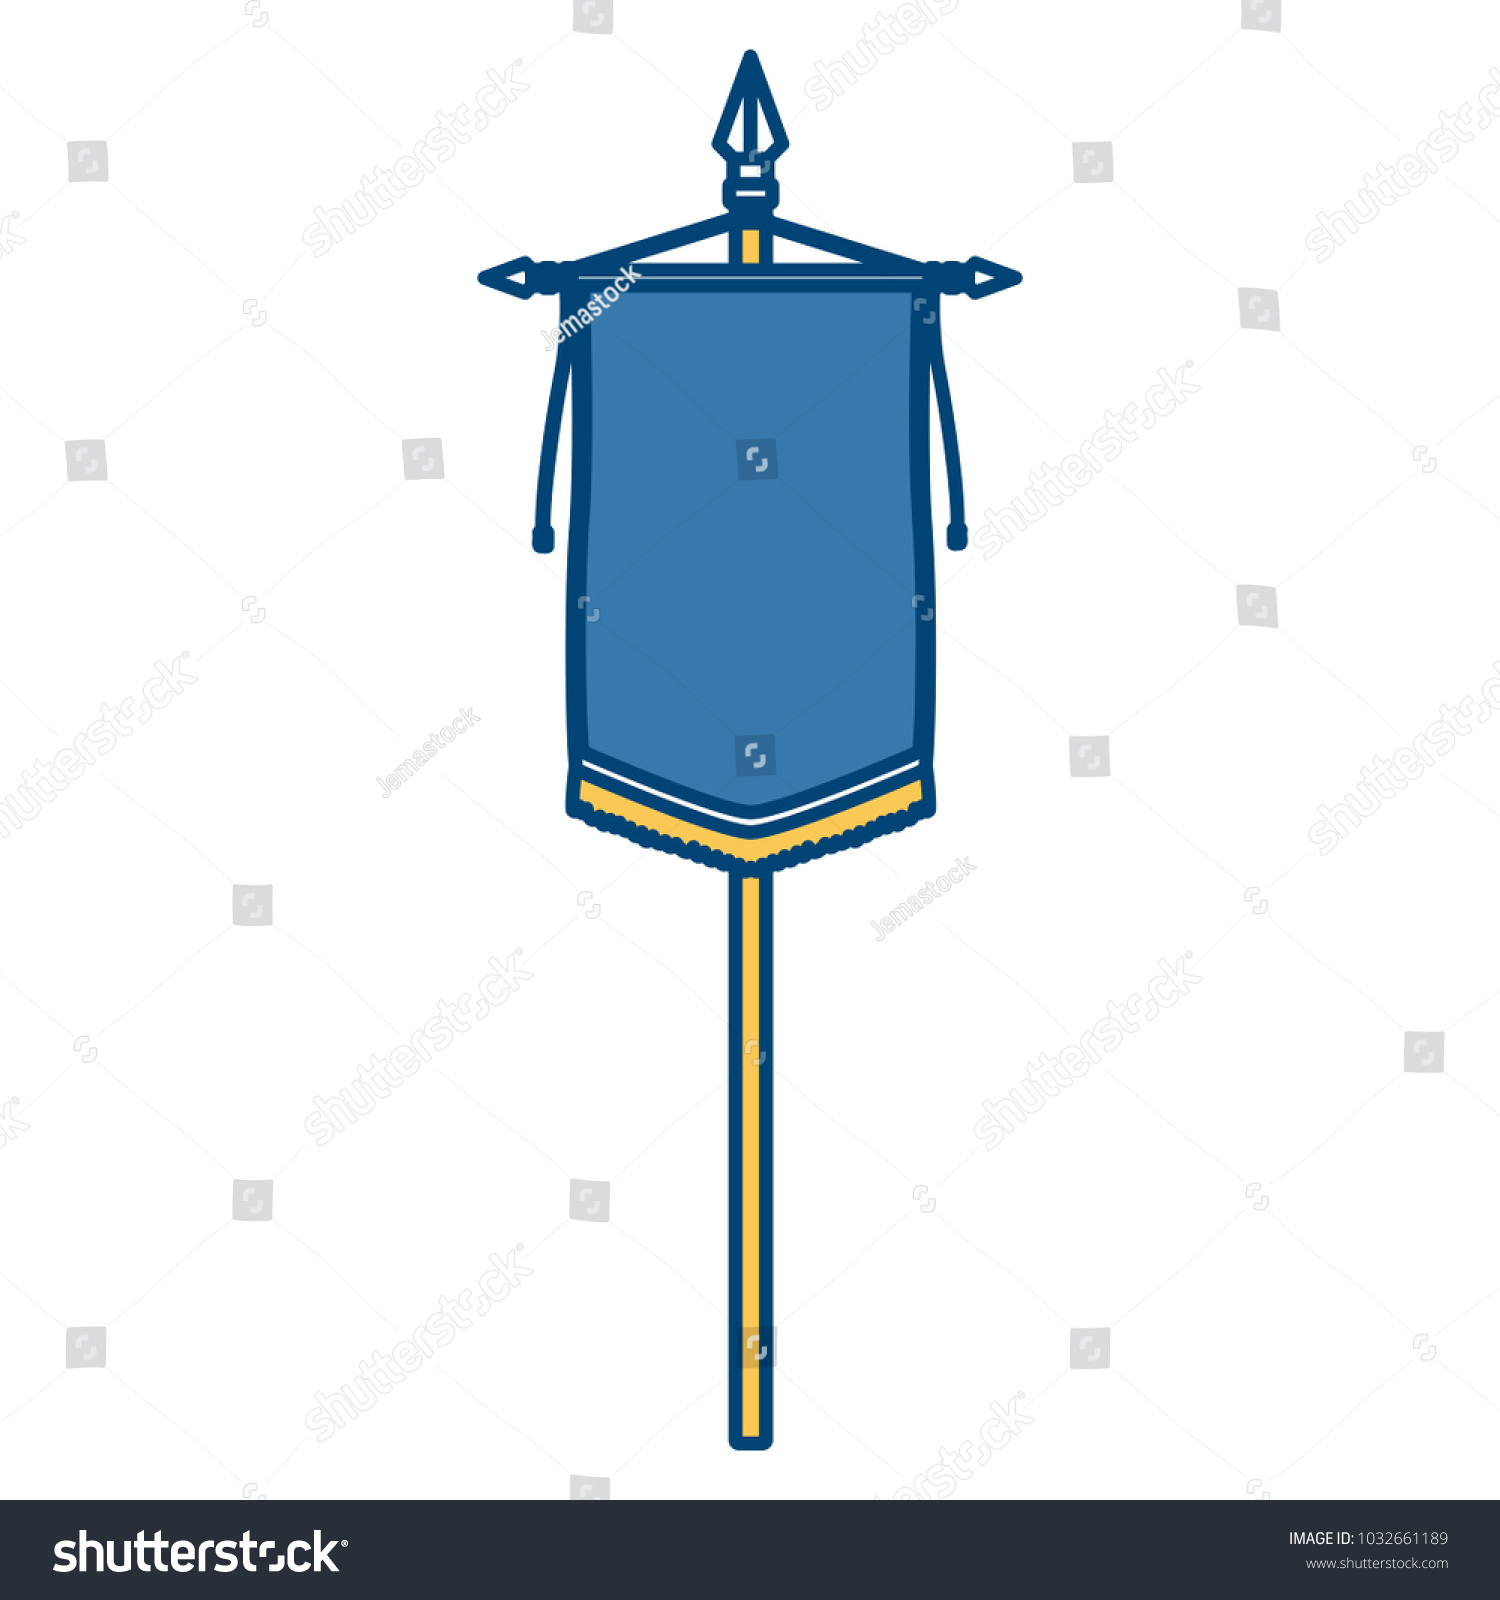 Medieval Flag Symbol Stock Photo (Photo, Vector, Illustration ...